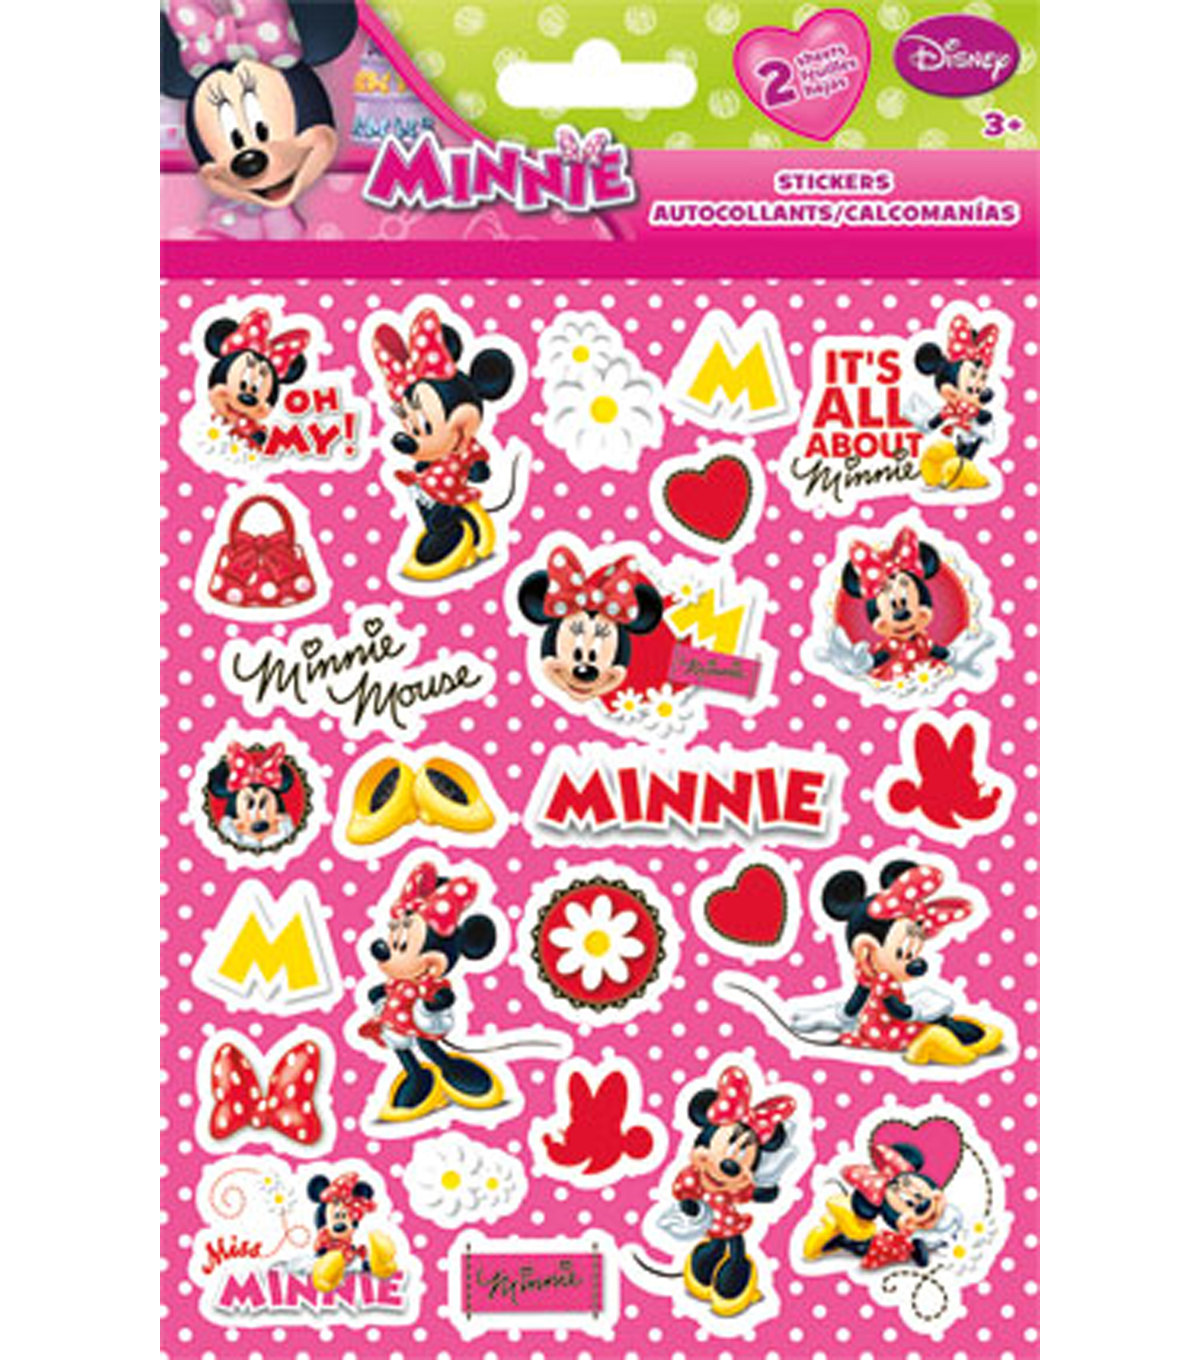 Minnie Mouse Foldover Sticker